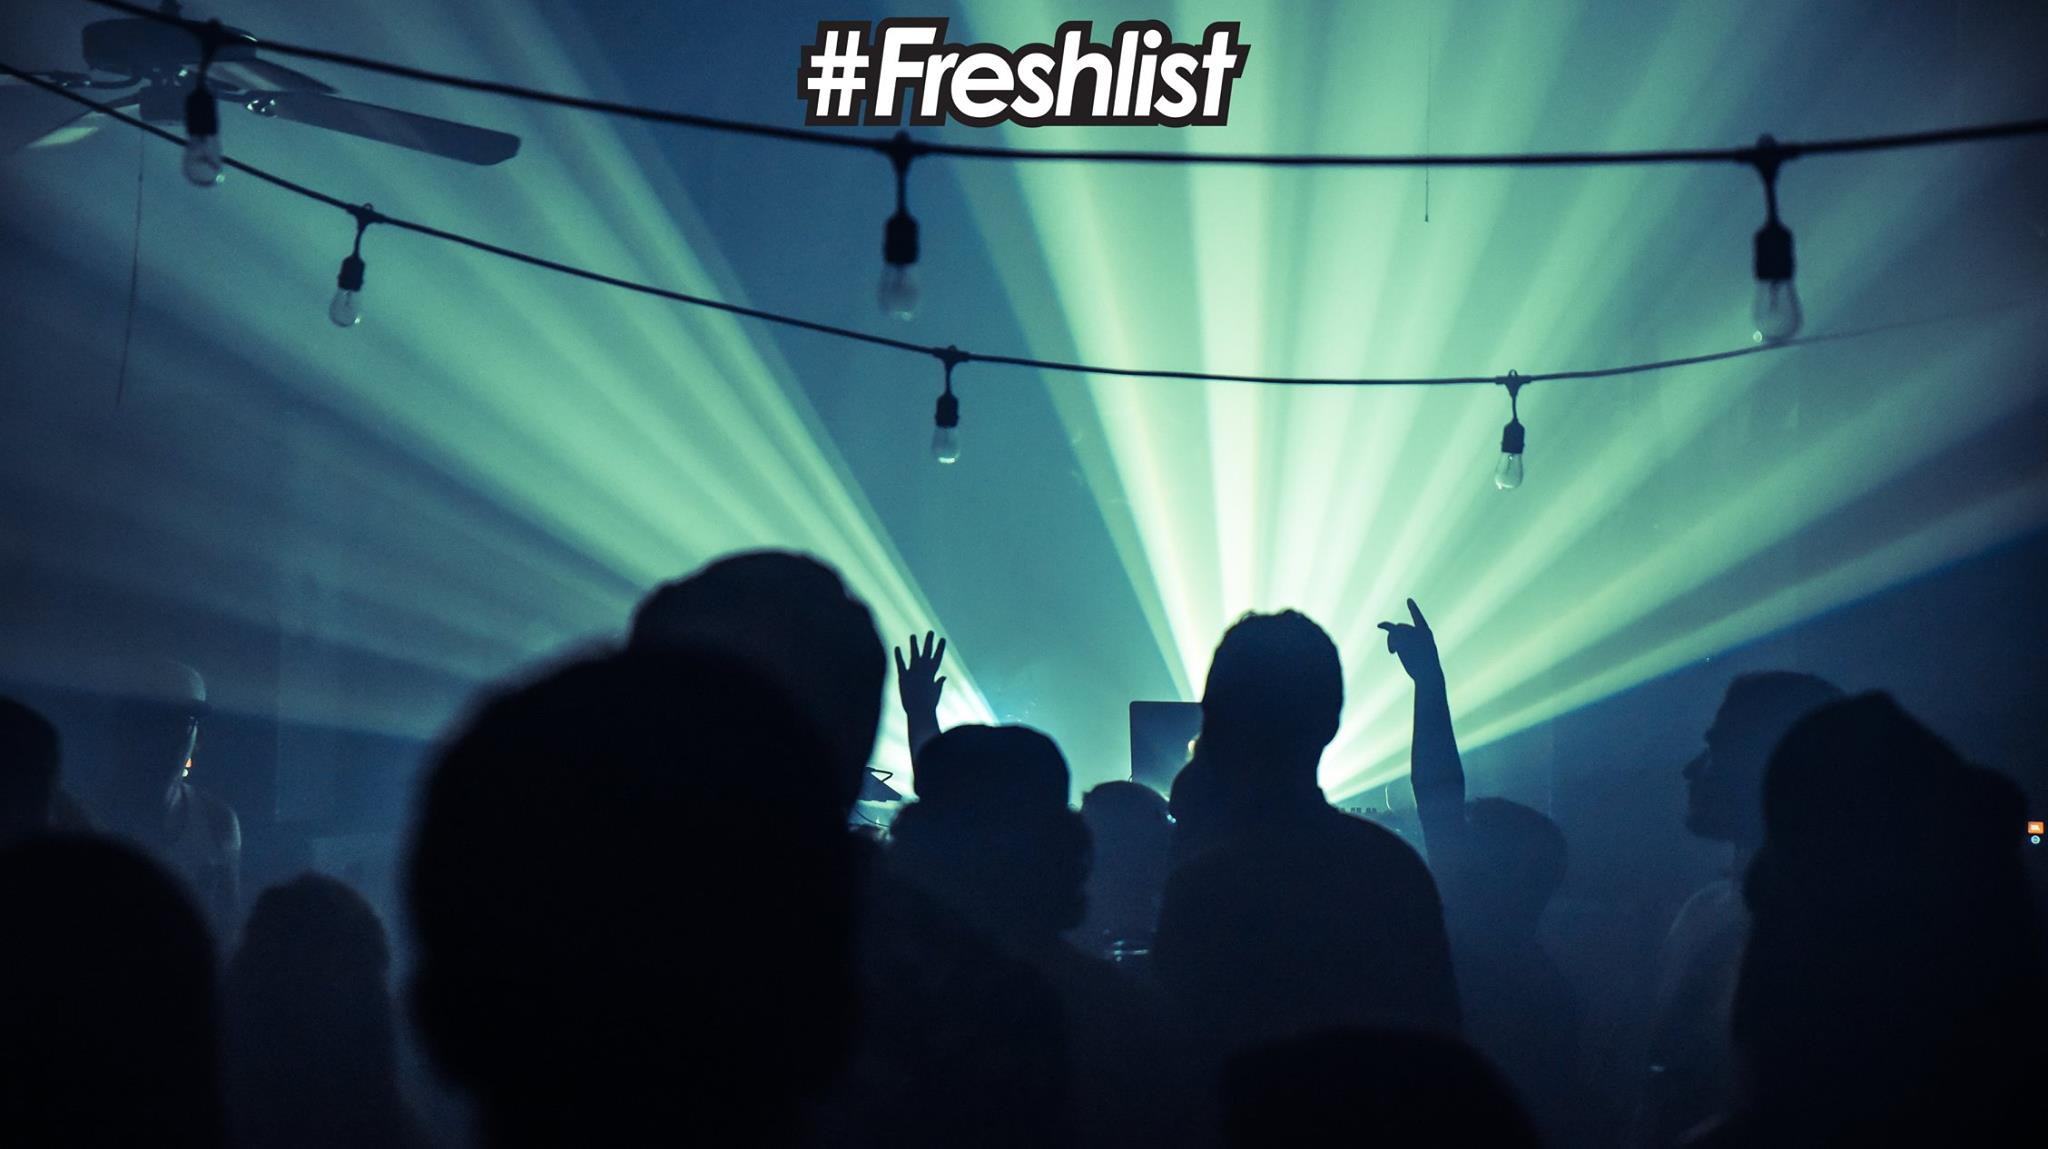 #Music #Art #Culture - curated by the #Freshlist